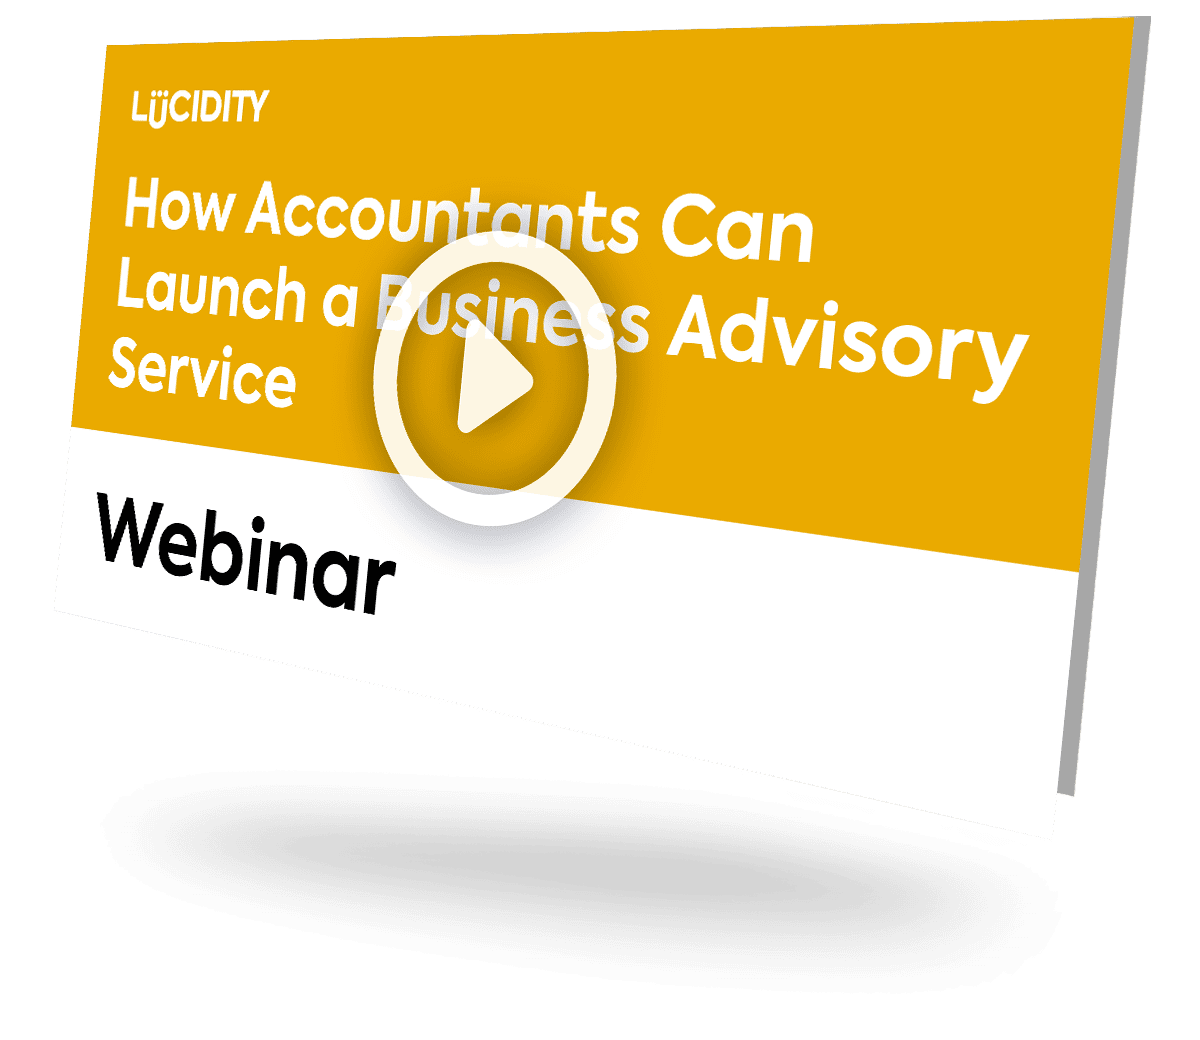 How Accountants Can Launch Advisory Services Thumbnail